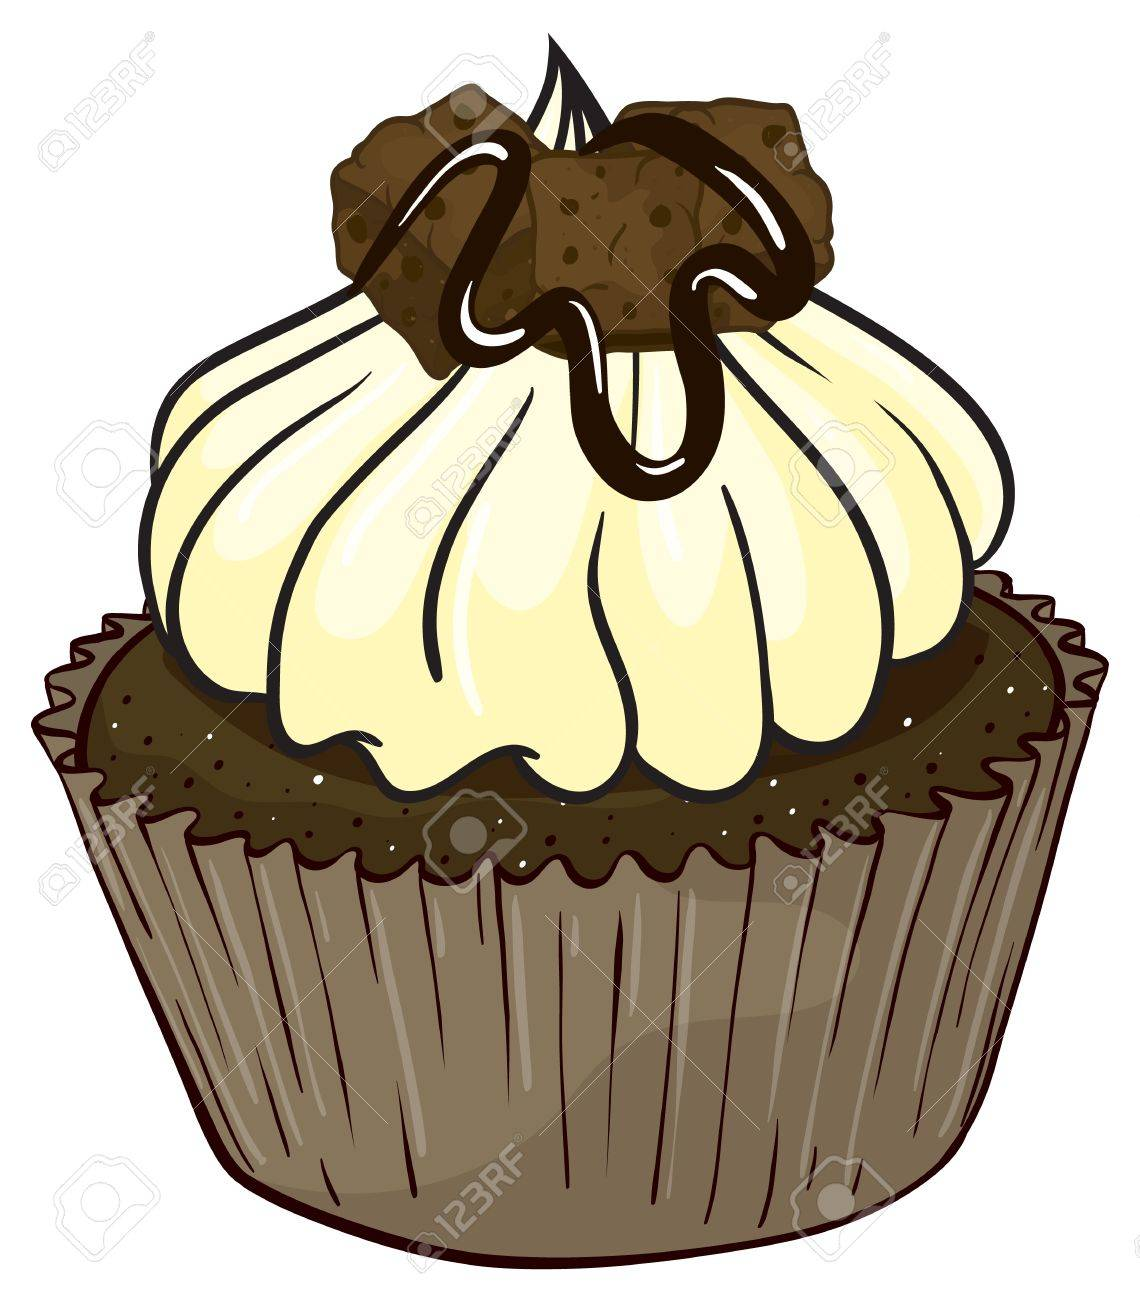 Illustration of an isolated cupcake Stock Vector - 16157993